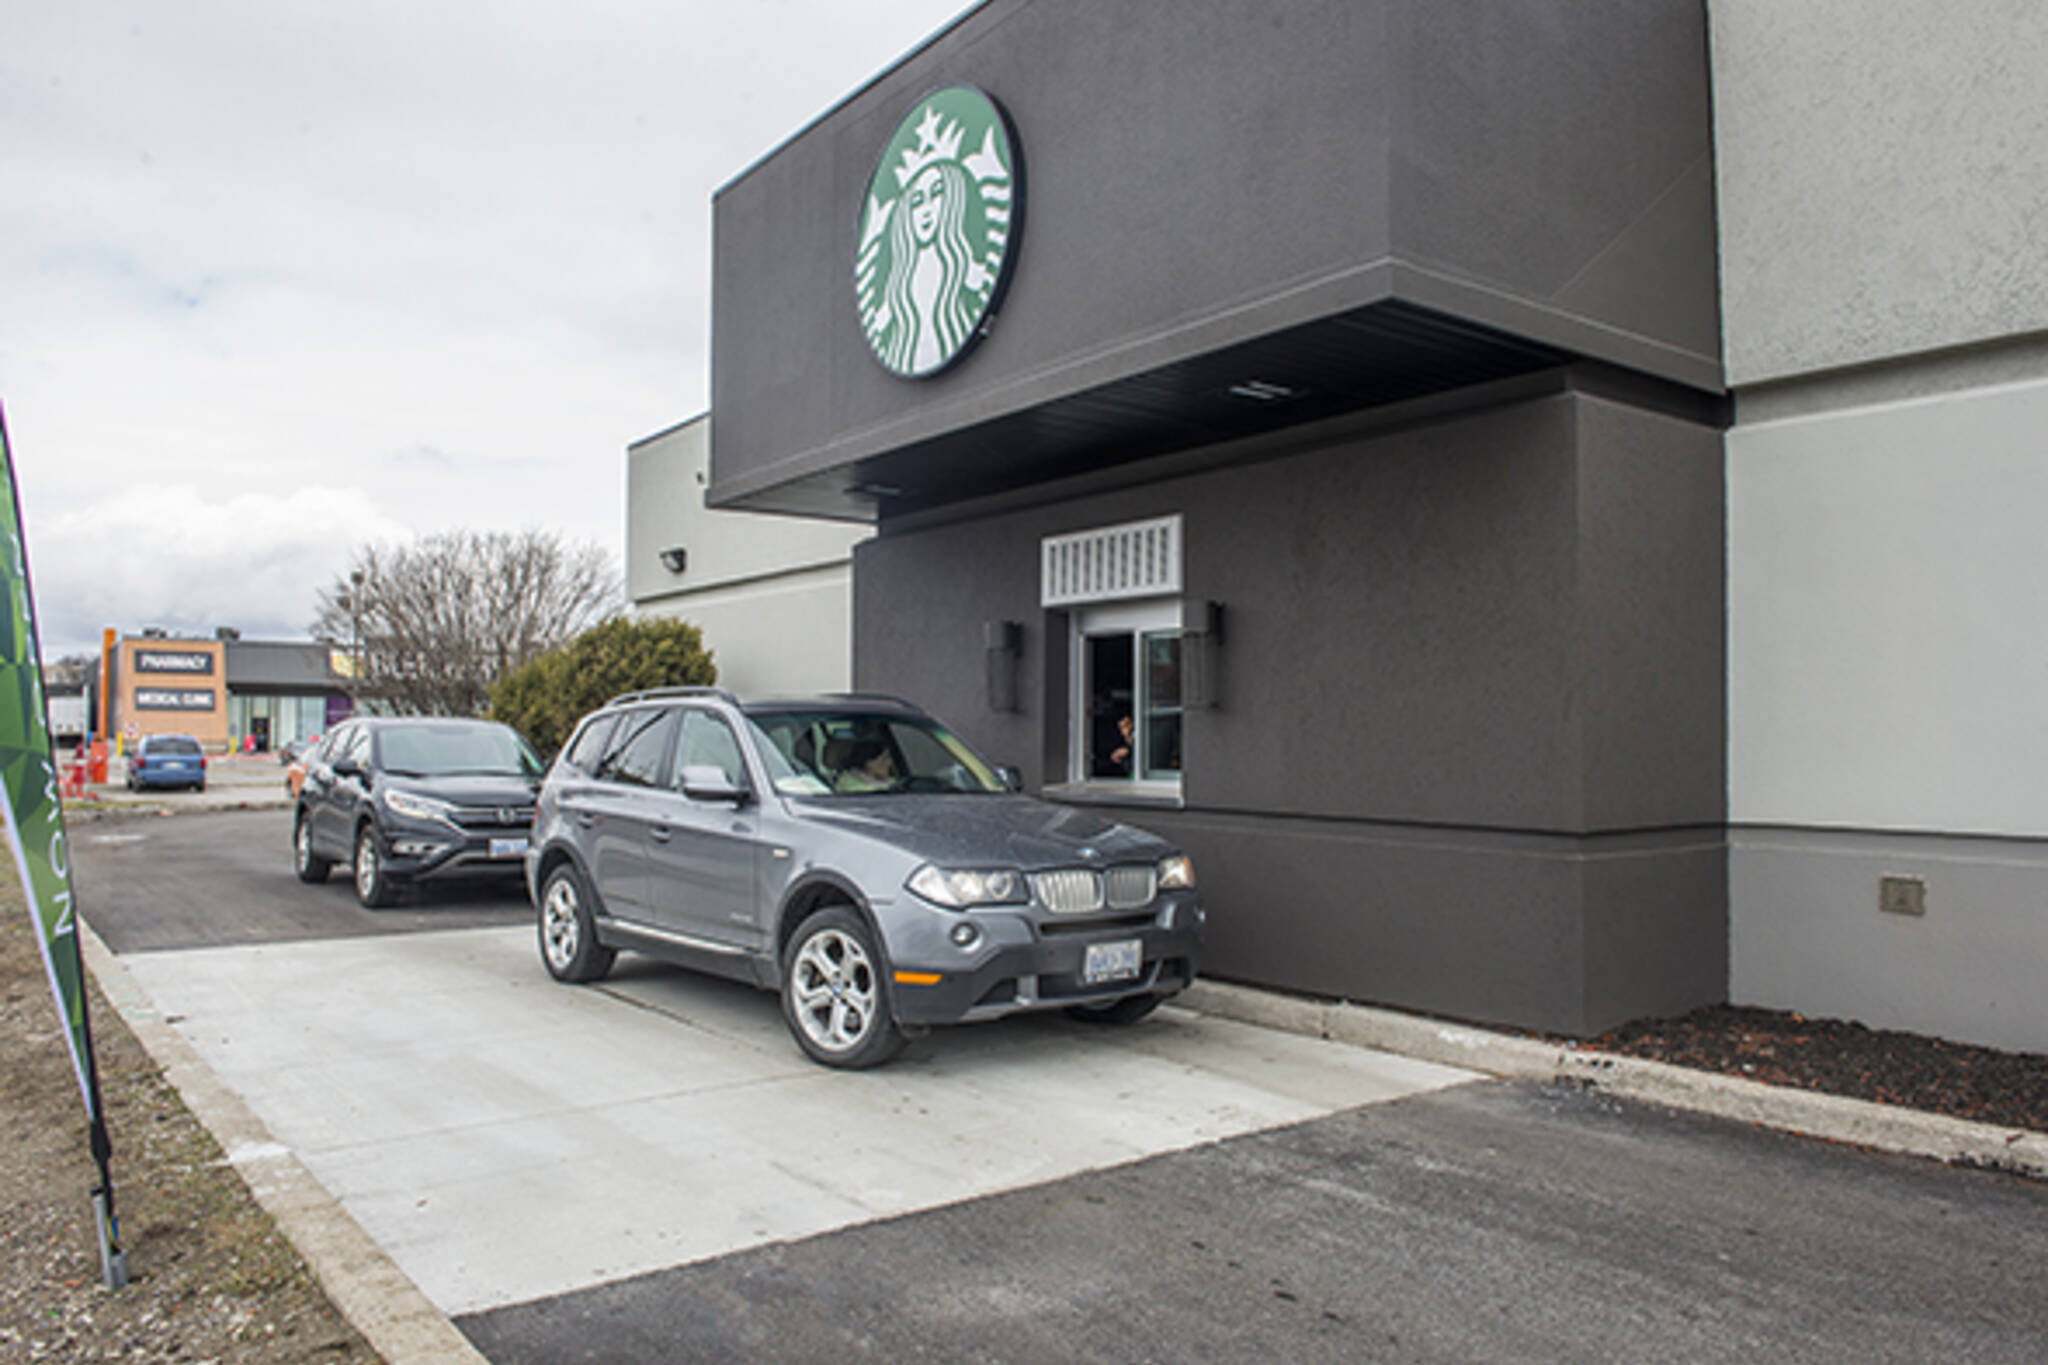 how to order coffee at starbucks drive thru